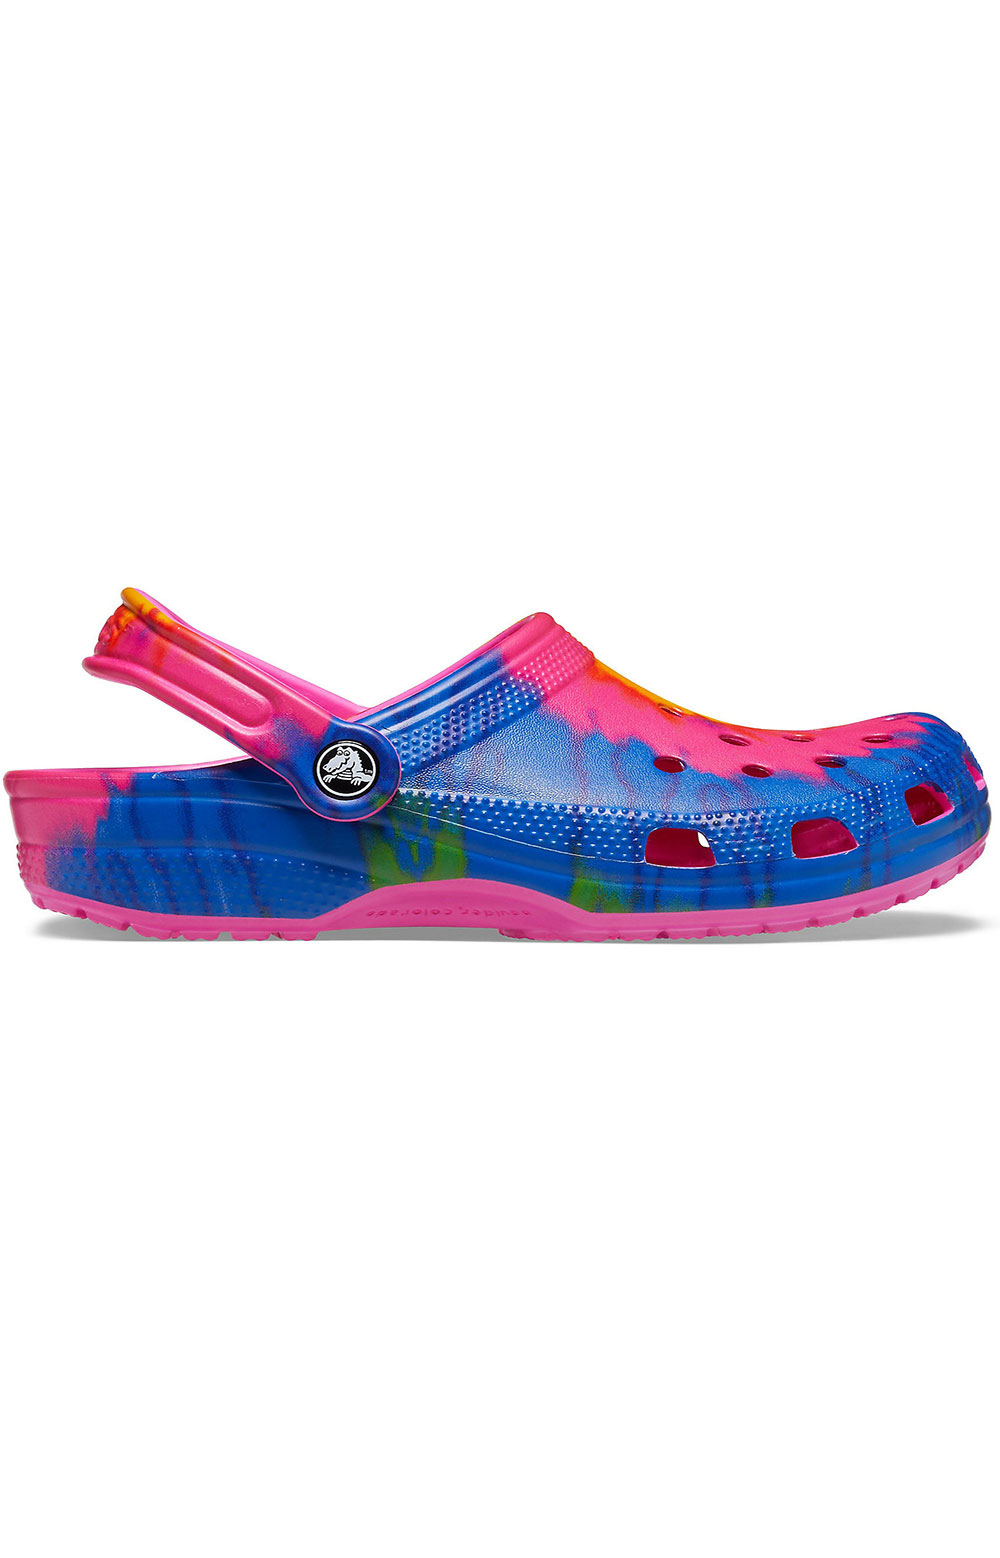 Classic Tie-Dye Graphic Clogs - Electric Pink/Multi 2